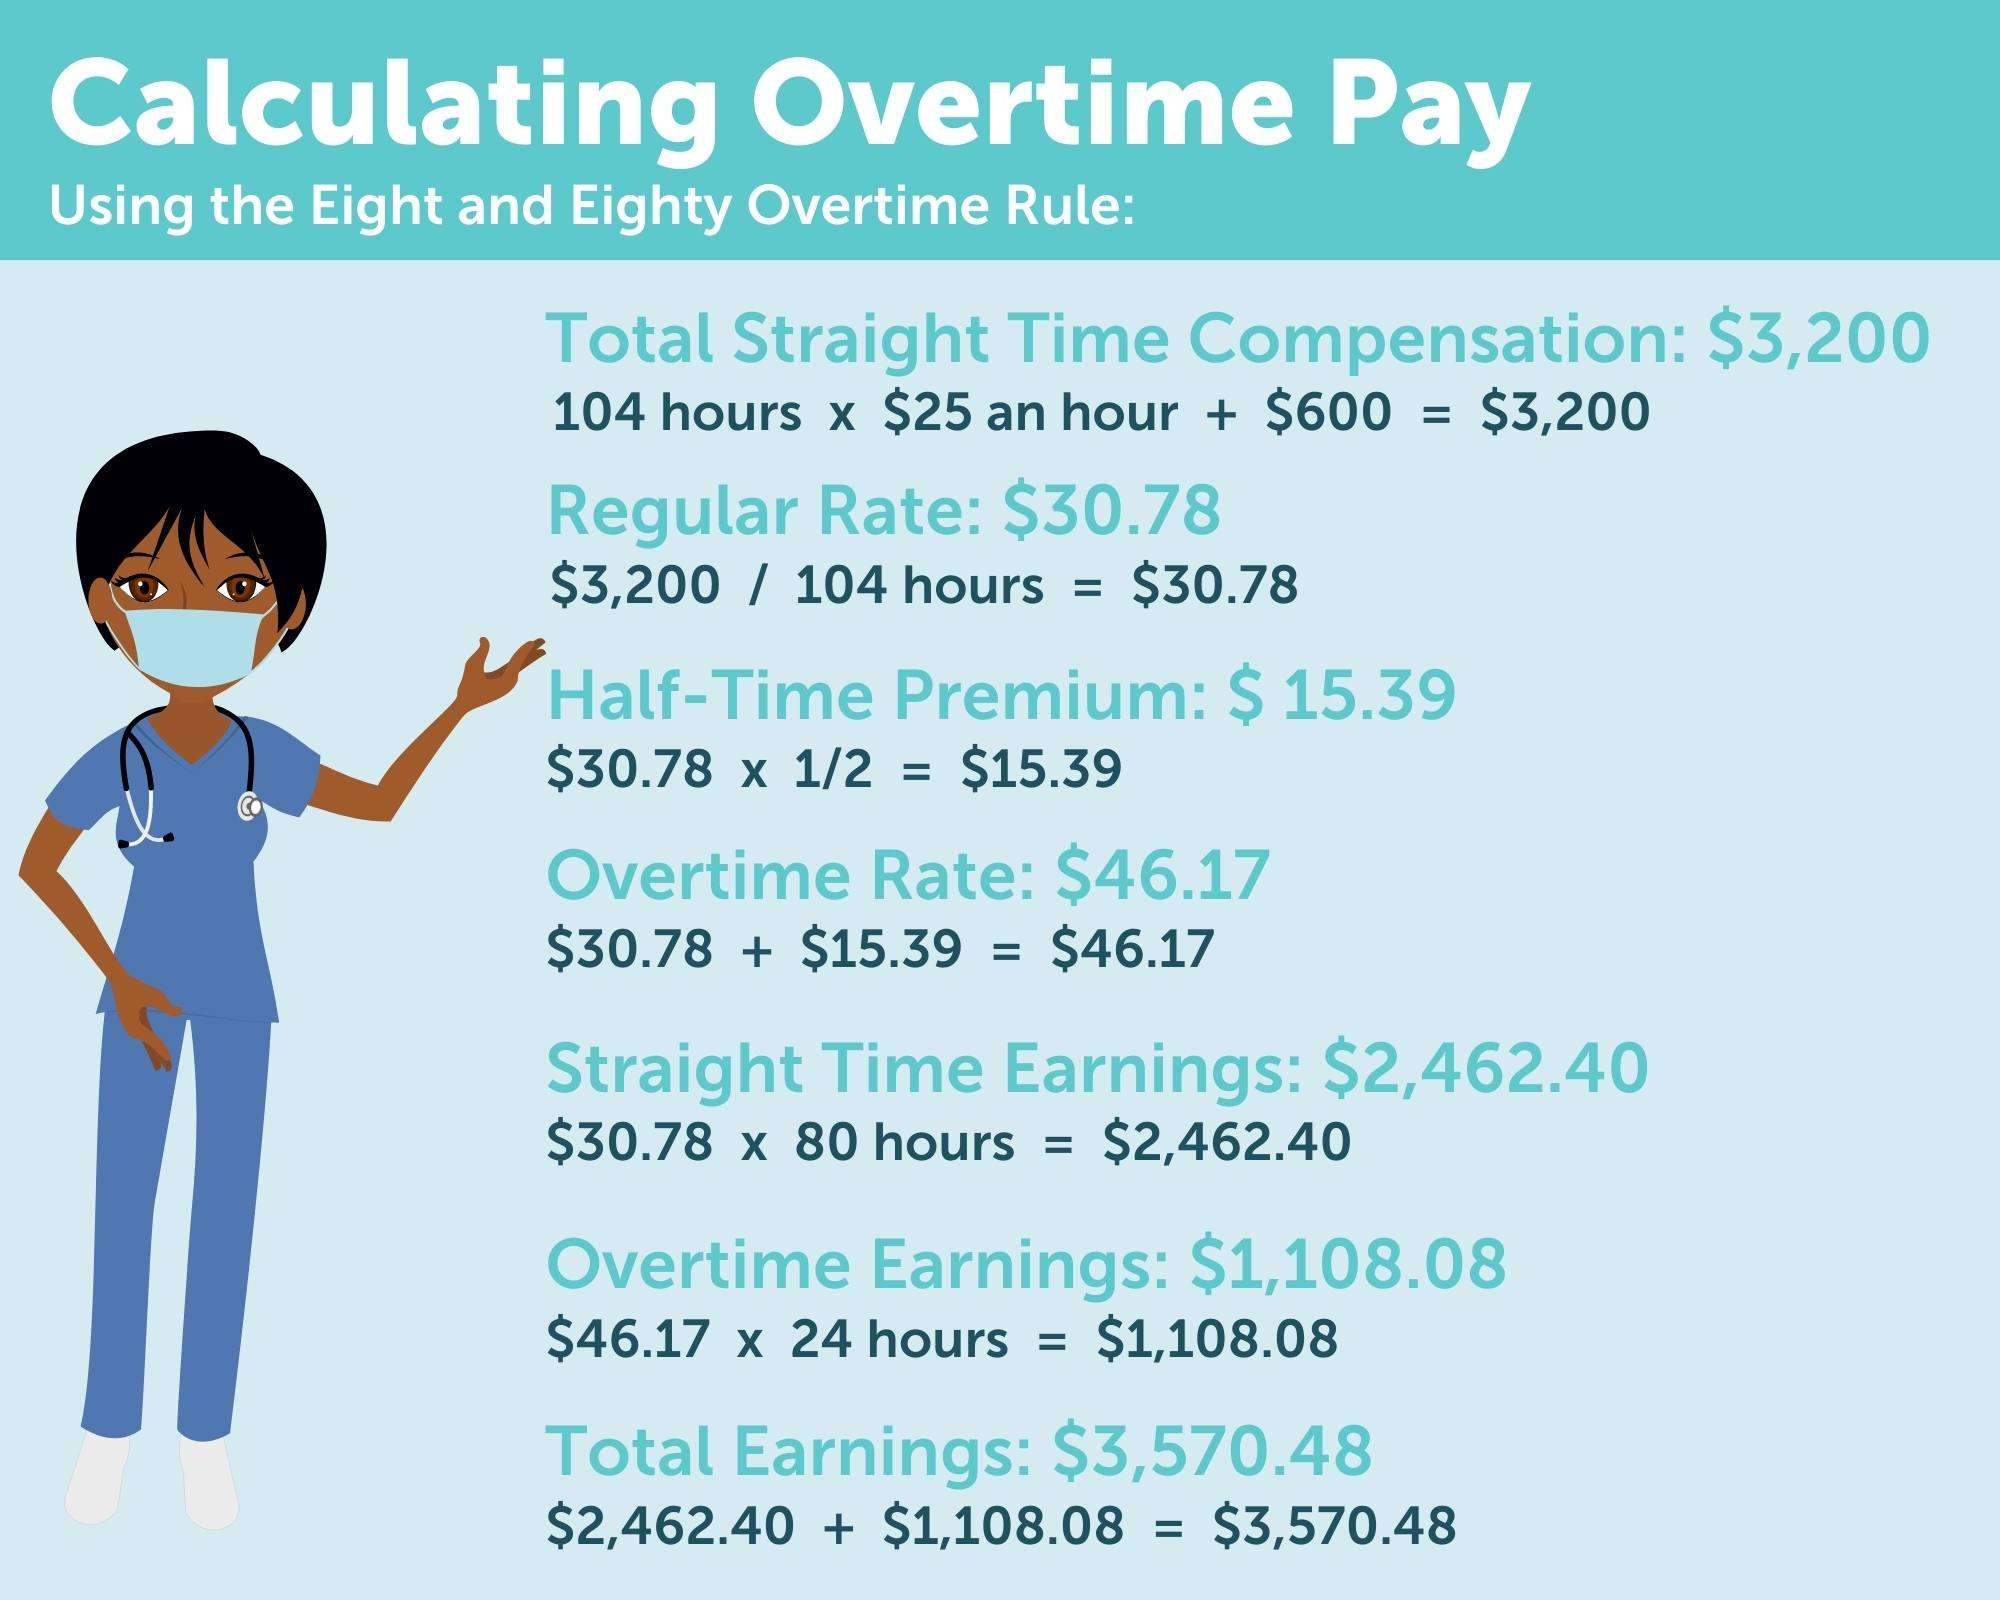 Calculating Overtime Pay Using 8 And 80 Rule